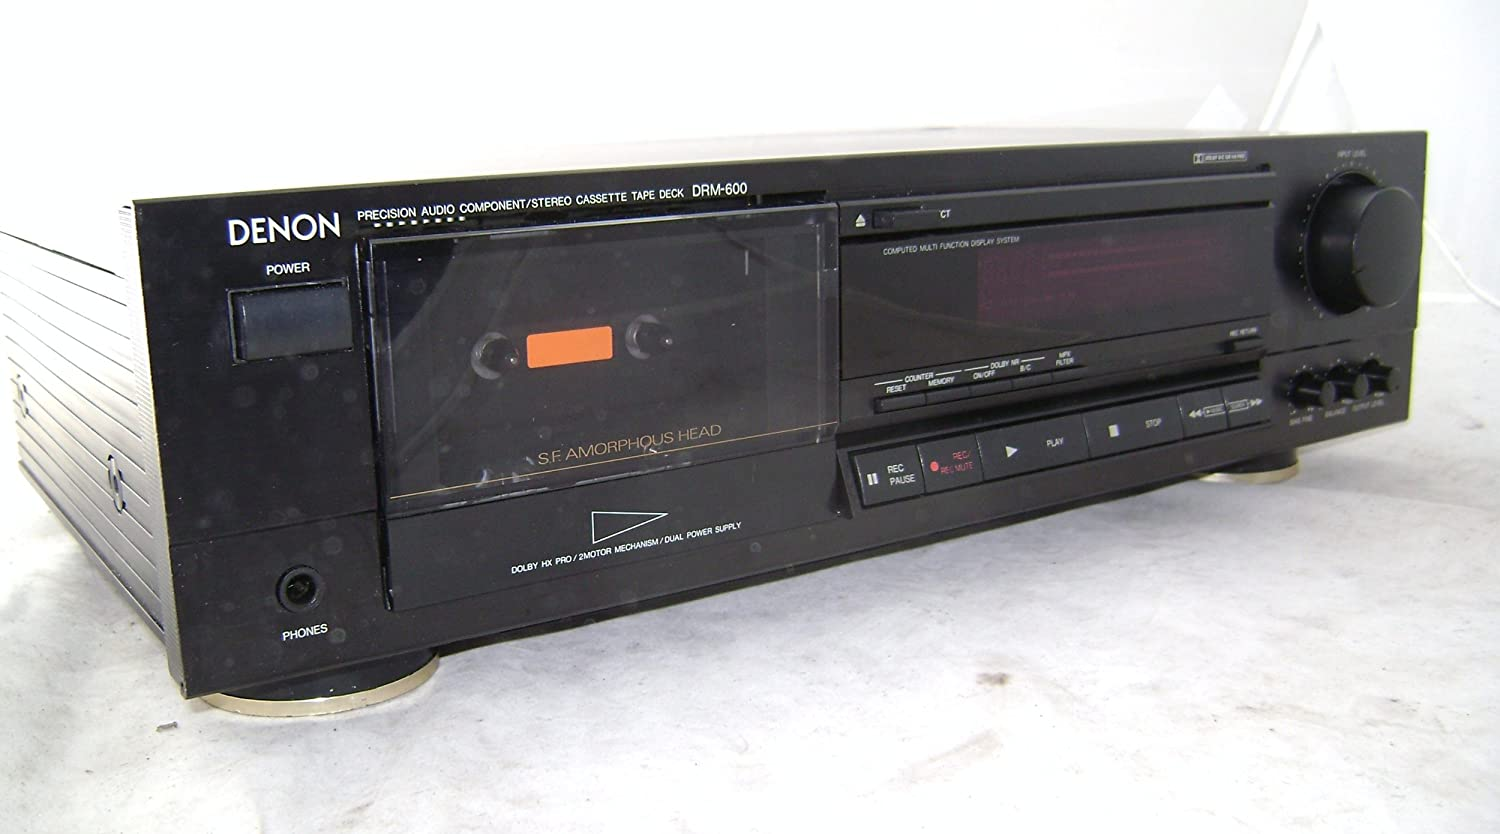 Denon Cassette deck DRM-600 tape player: Amazon co uk: Electronics